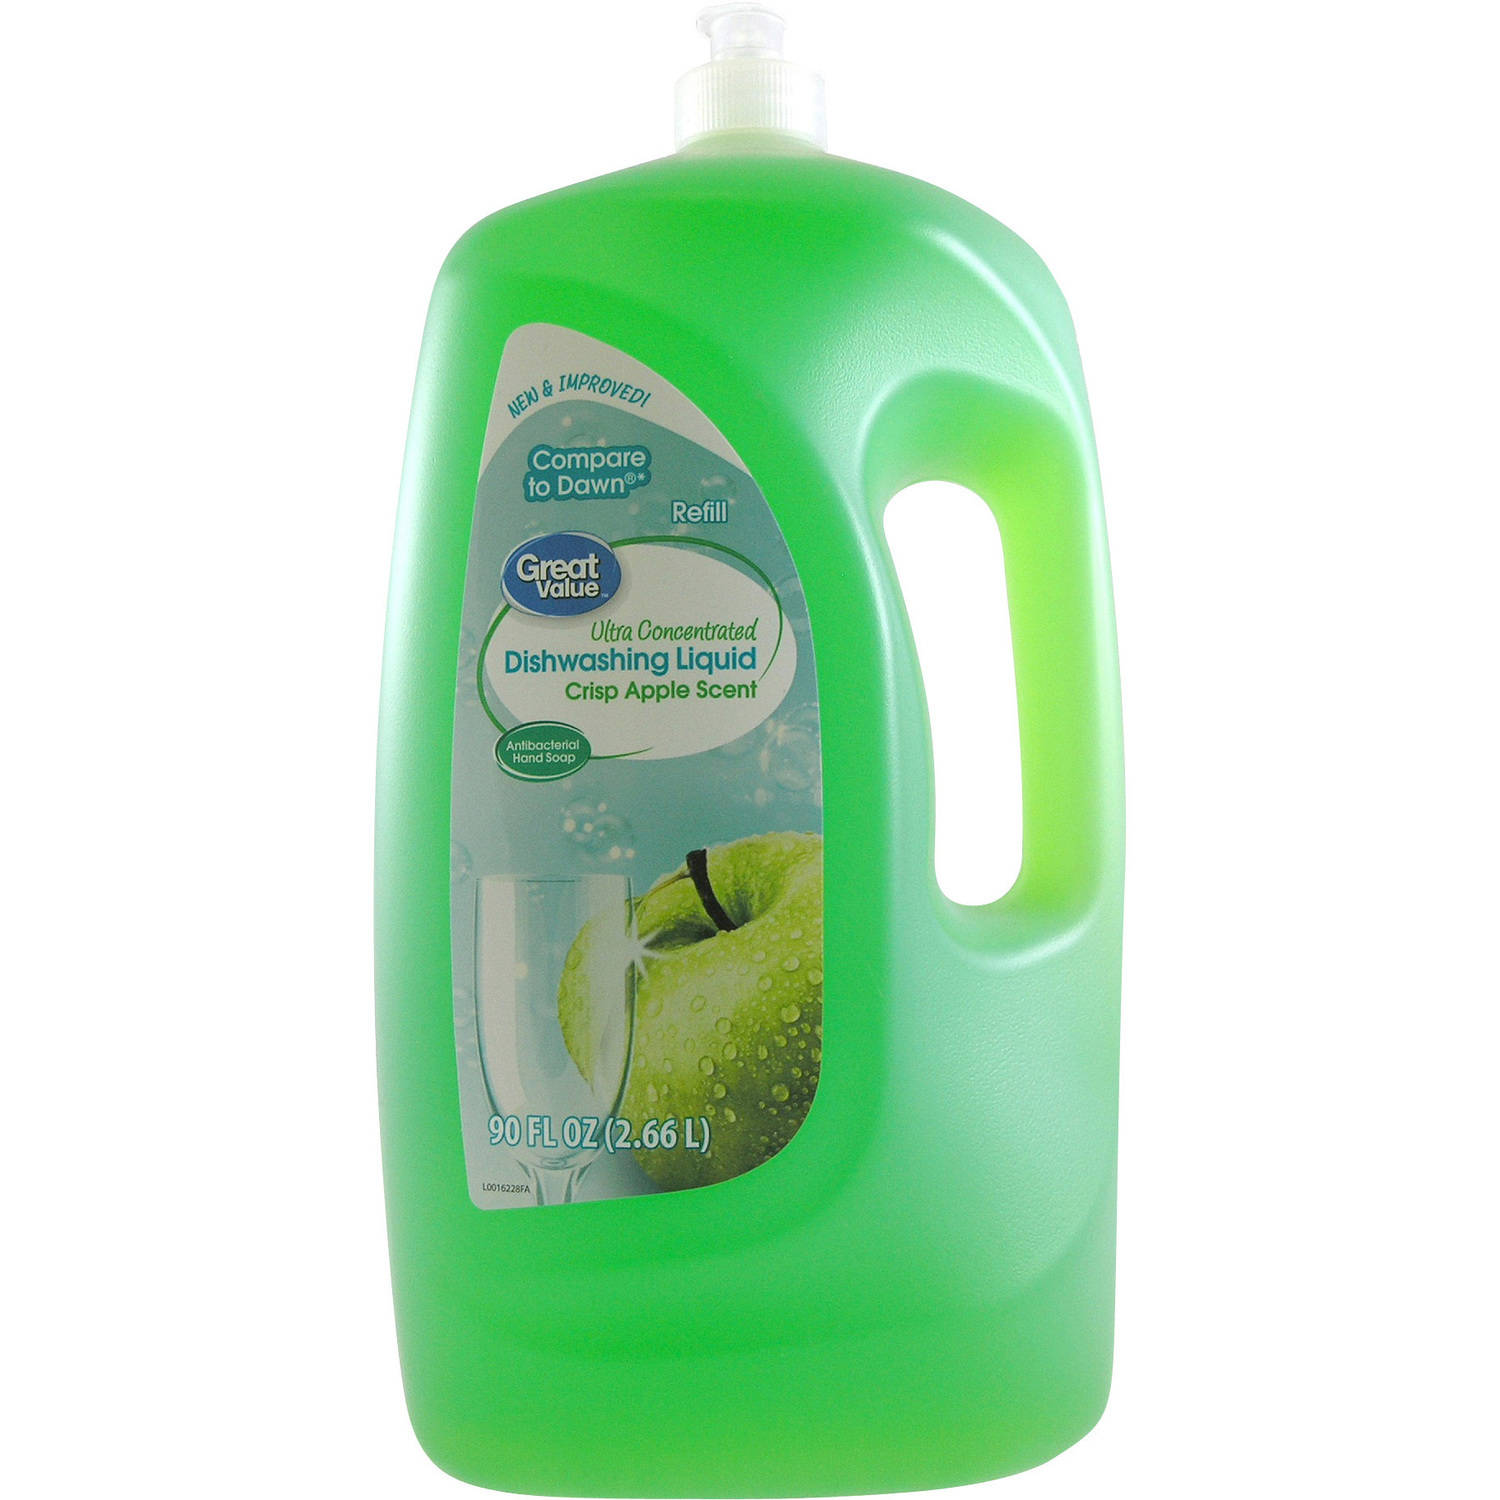 Great Value Ultra Concentrated Dishwashing Liquid, Crisp Apple Scent, 90 oz